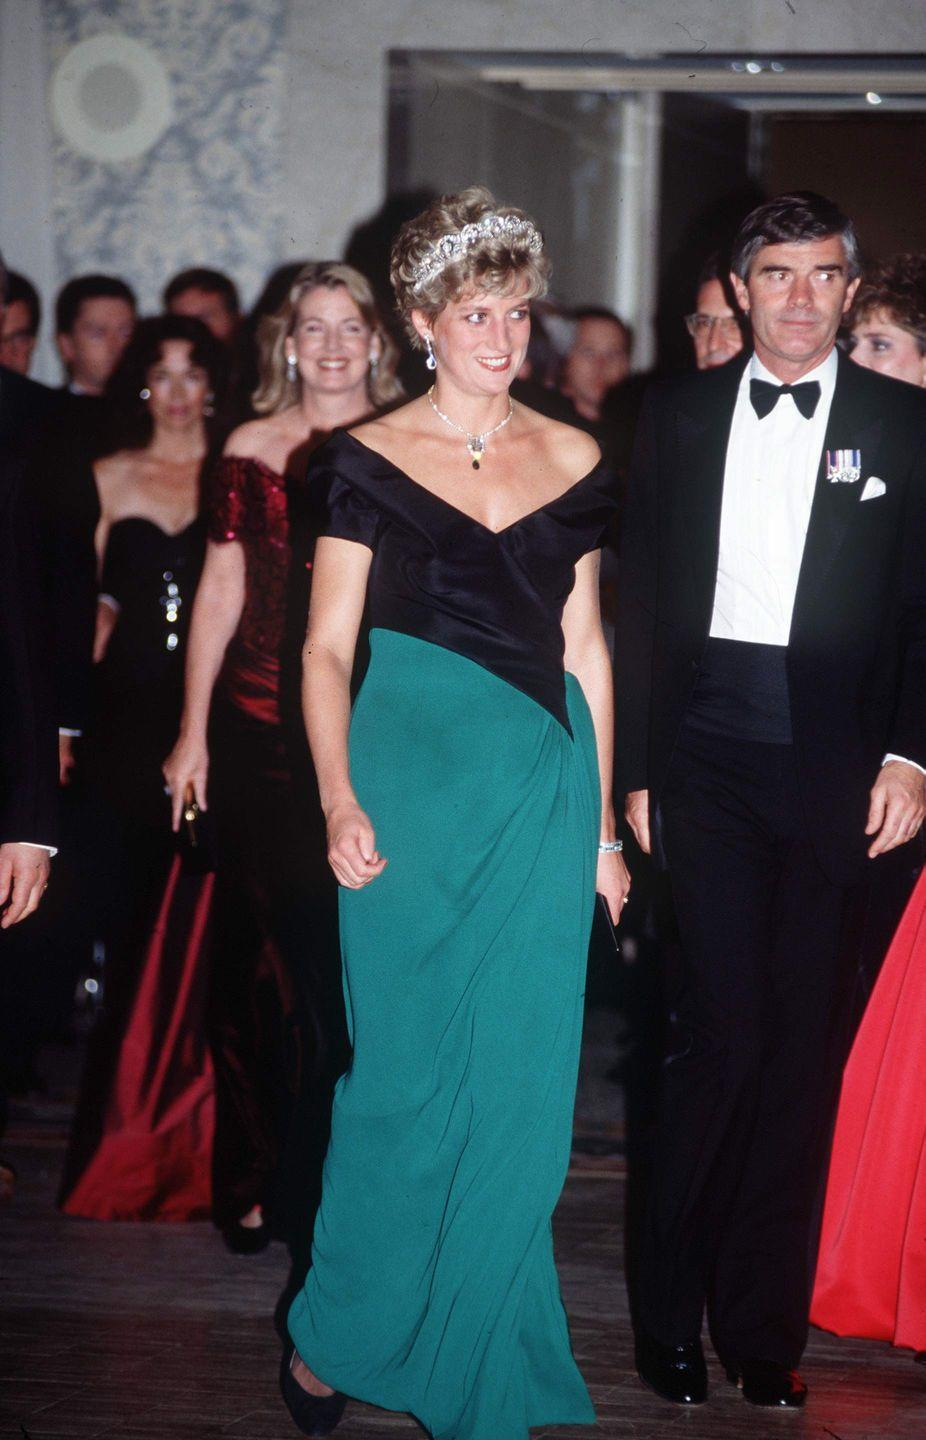 <p>At a gala in Toronto, Canada, Diana chose a silk and crepe evening gown by Catherine Walker. She also sported the Spencer tiara and a pendant necklace. </p>